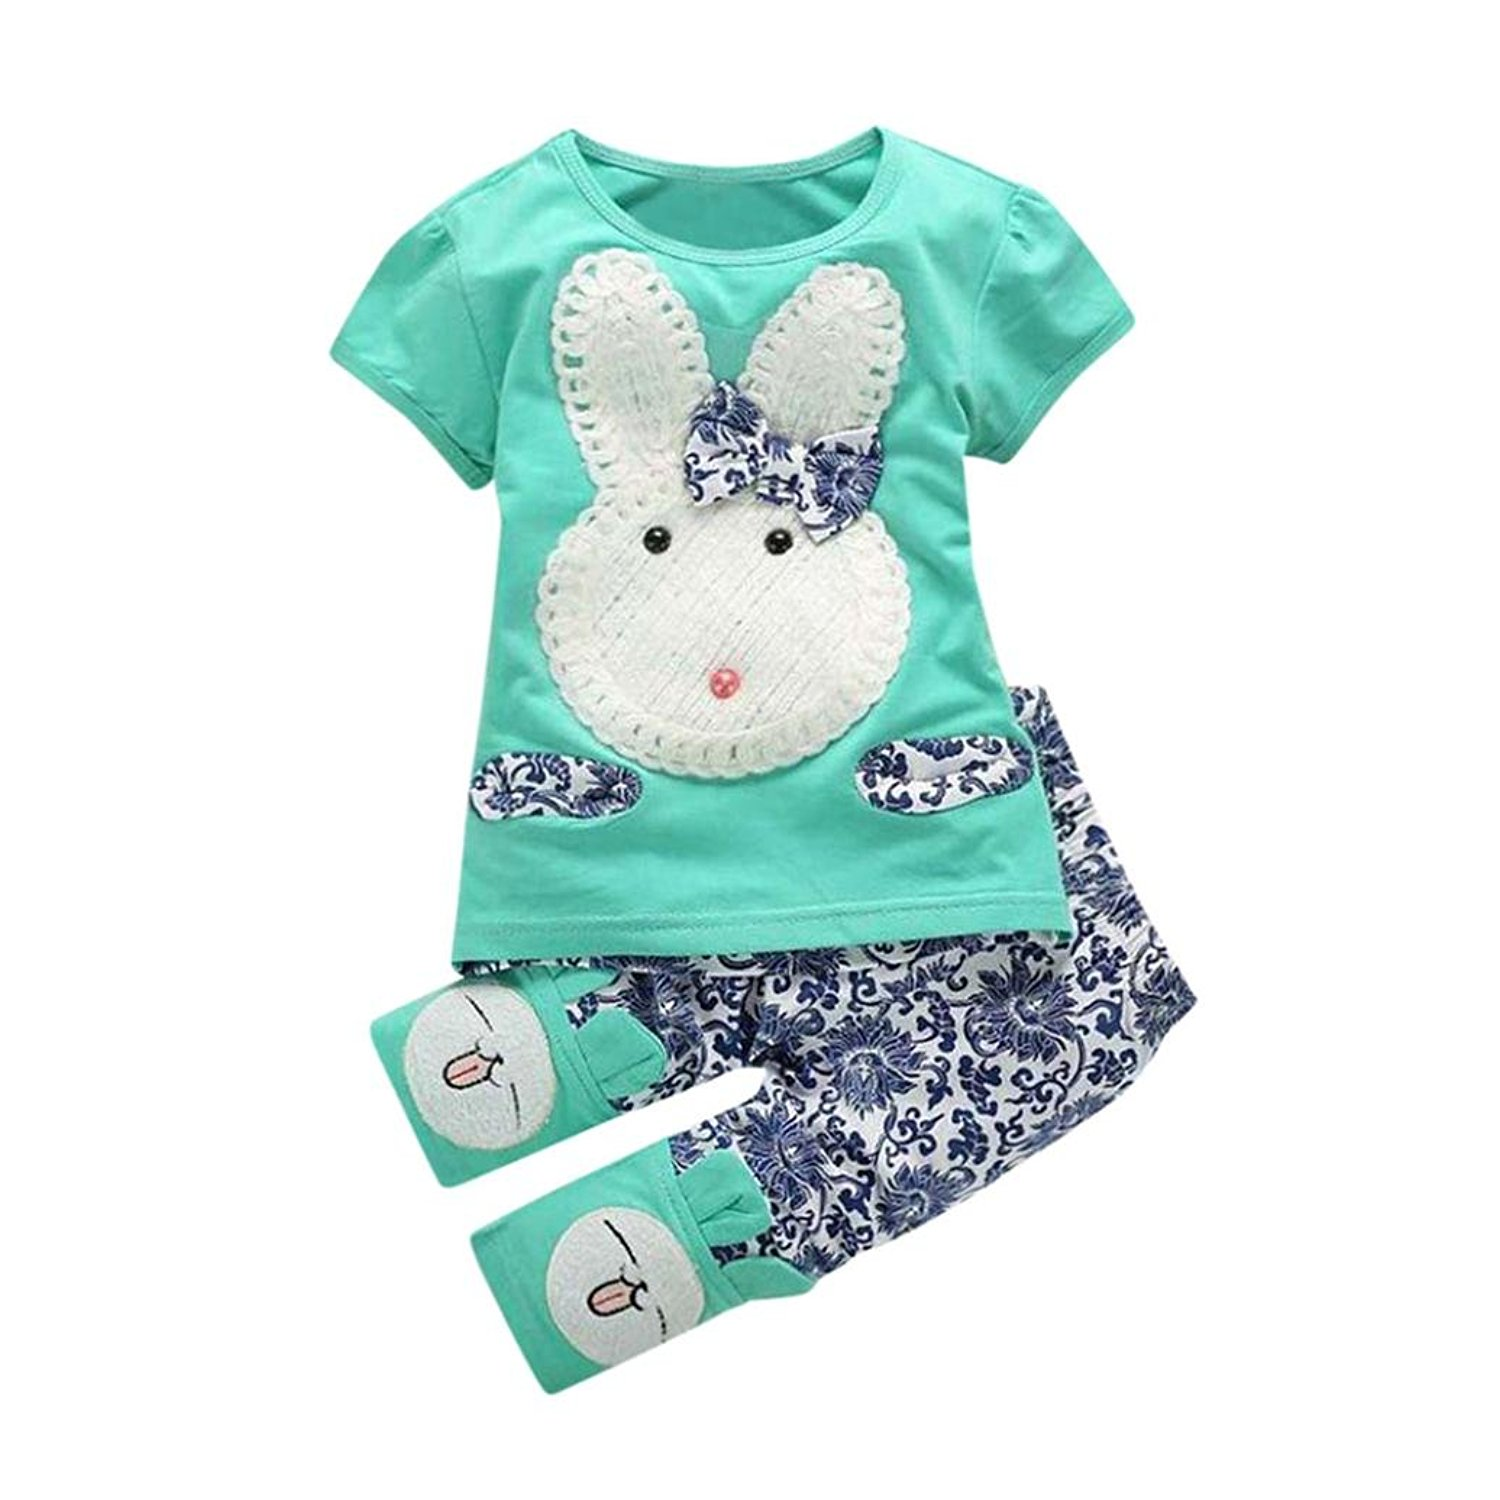 067a229b5fbc Get Quotations · G-real Rabbit Outfits